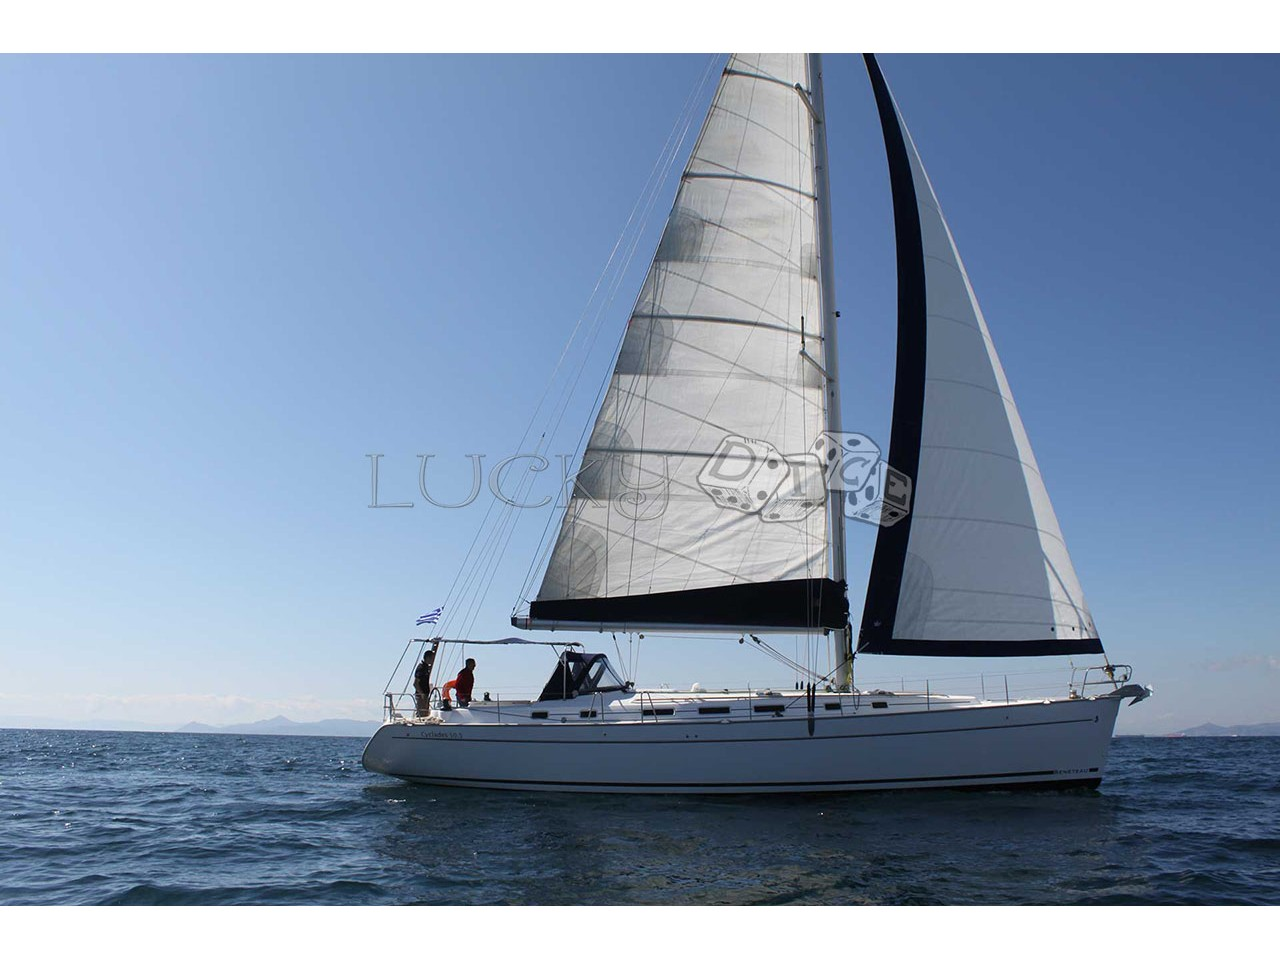 """Cyclades 50.5 """"Lucky dice - (A/C - Generator - Refit 2020)"""", Athens"""